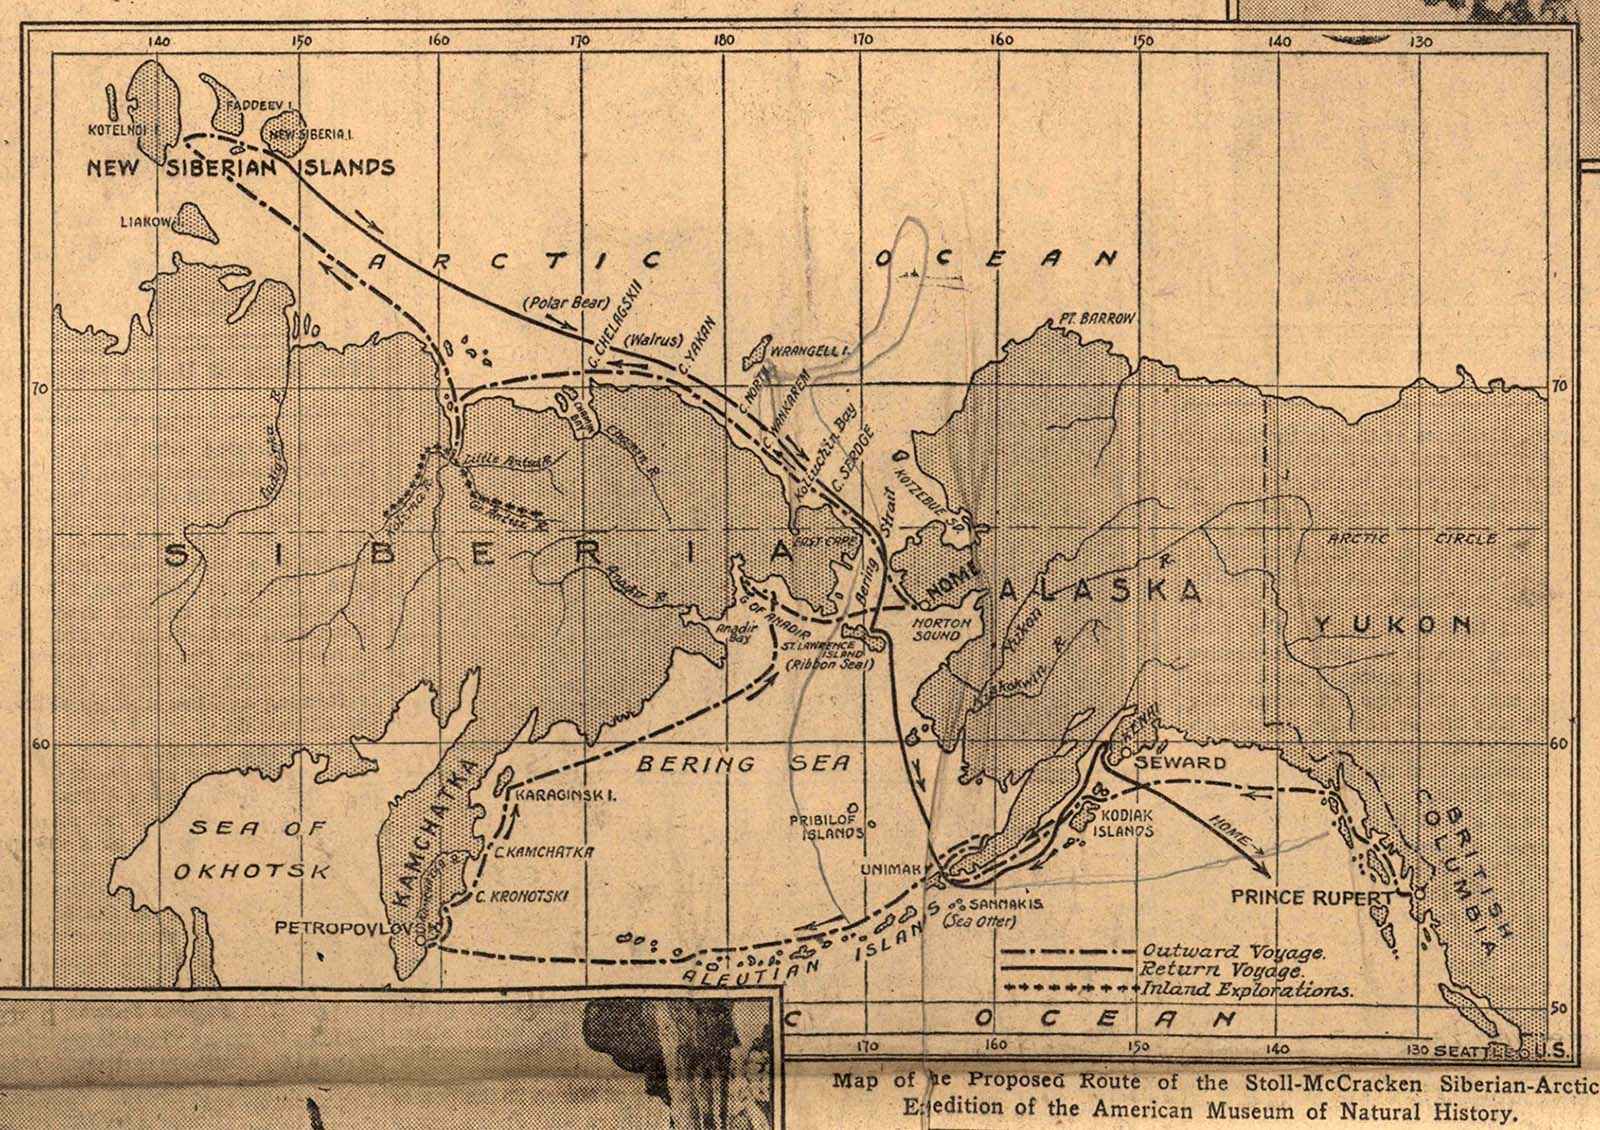 """Map, Stoll-McCracken Siberian-Arctic Expedition of the American Museum of Natural History, published in the """"New York Times"""" April 8. 1928. Scrapbook, MS 305 Harold McCracken Photograph Collection, McCracken Research Library. MS305.02.010"""